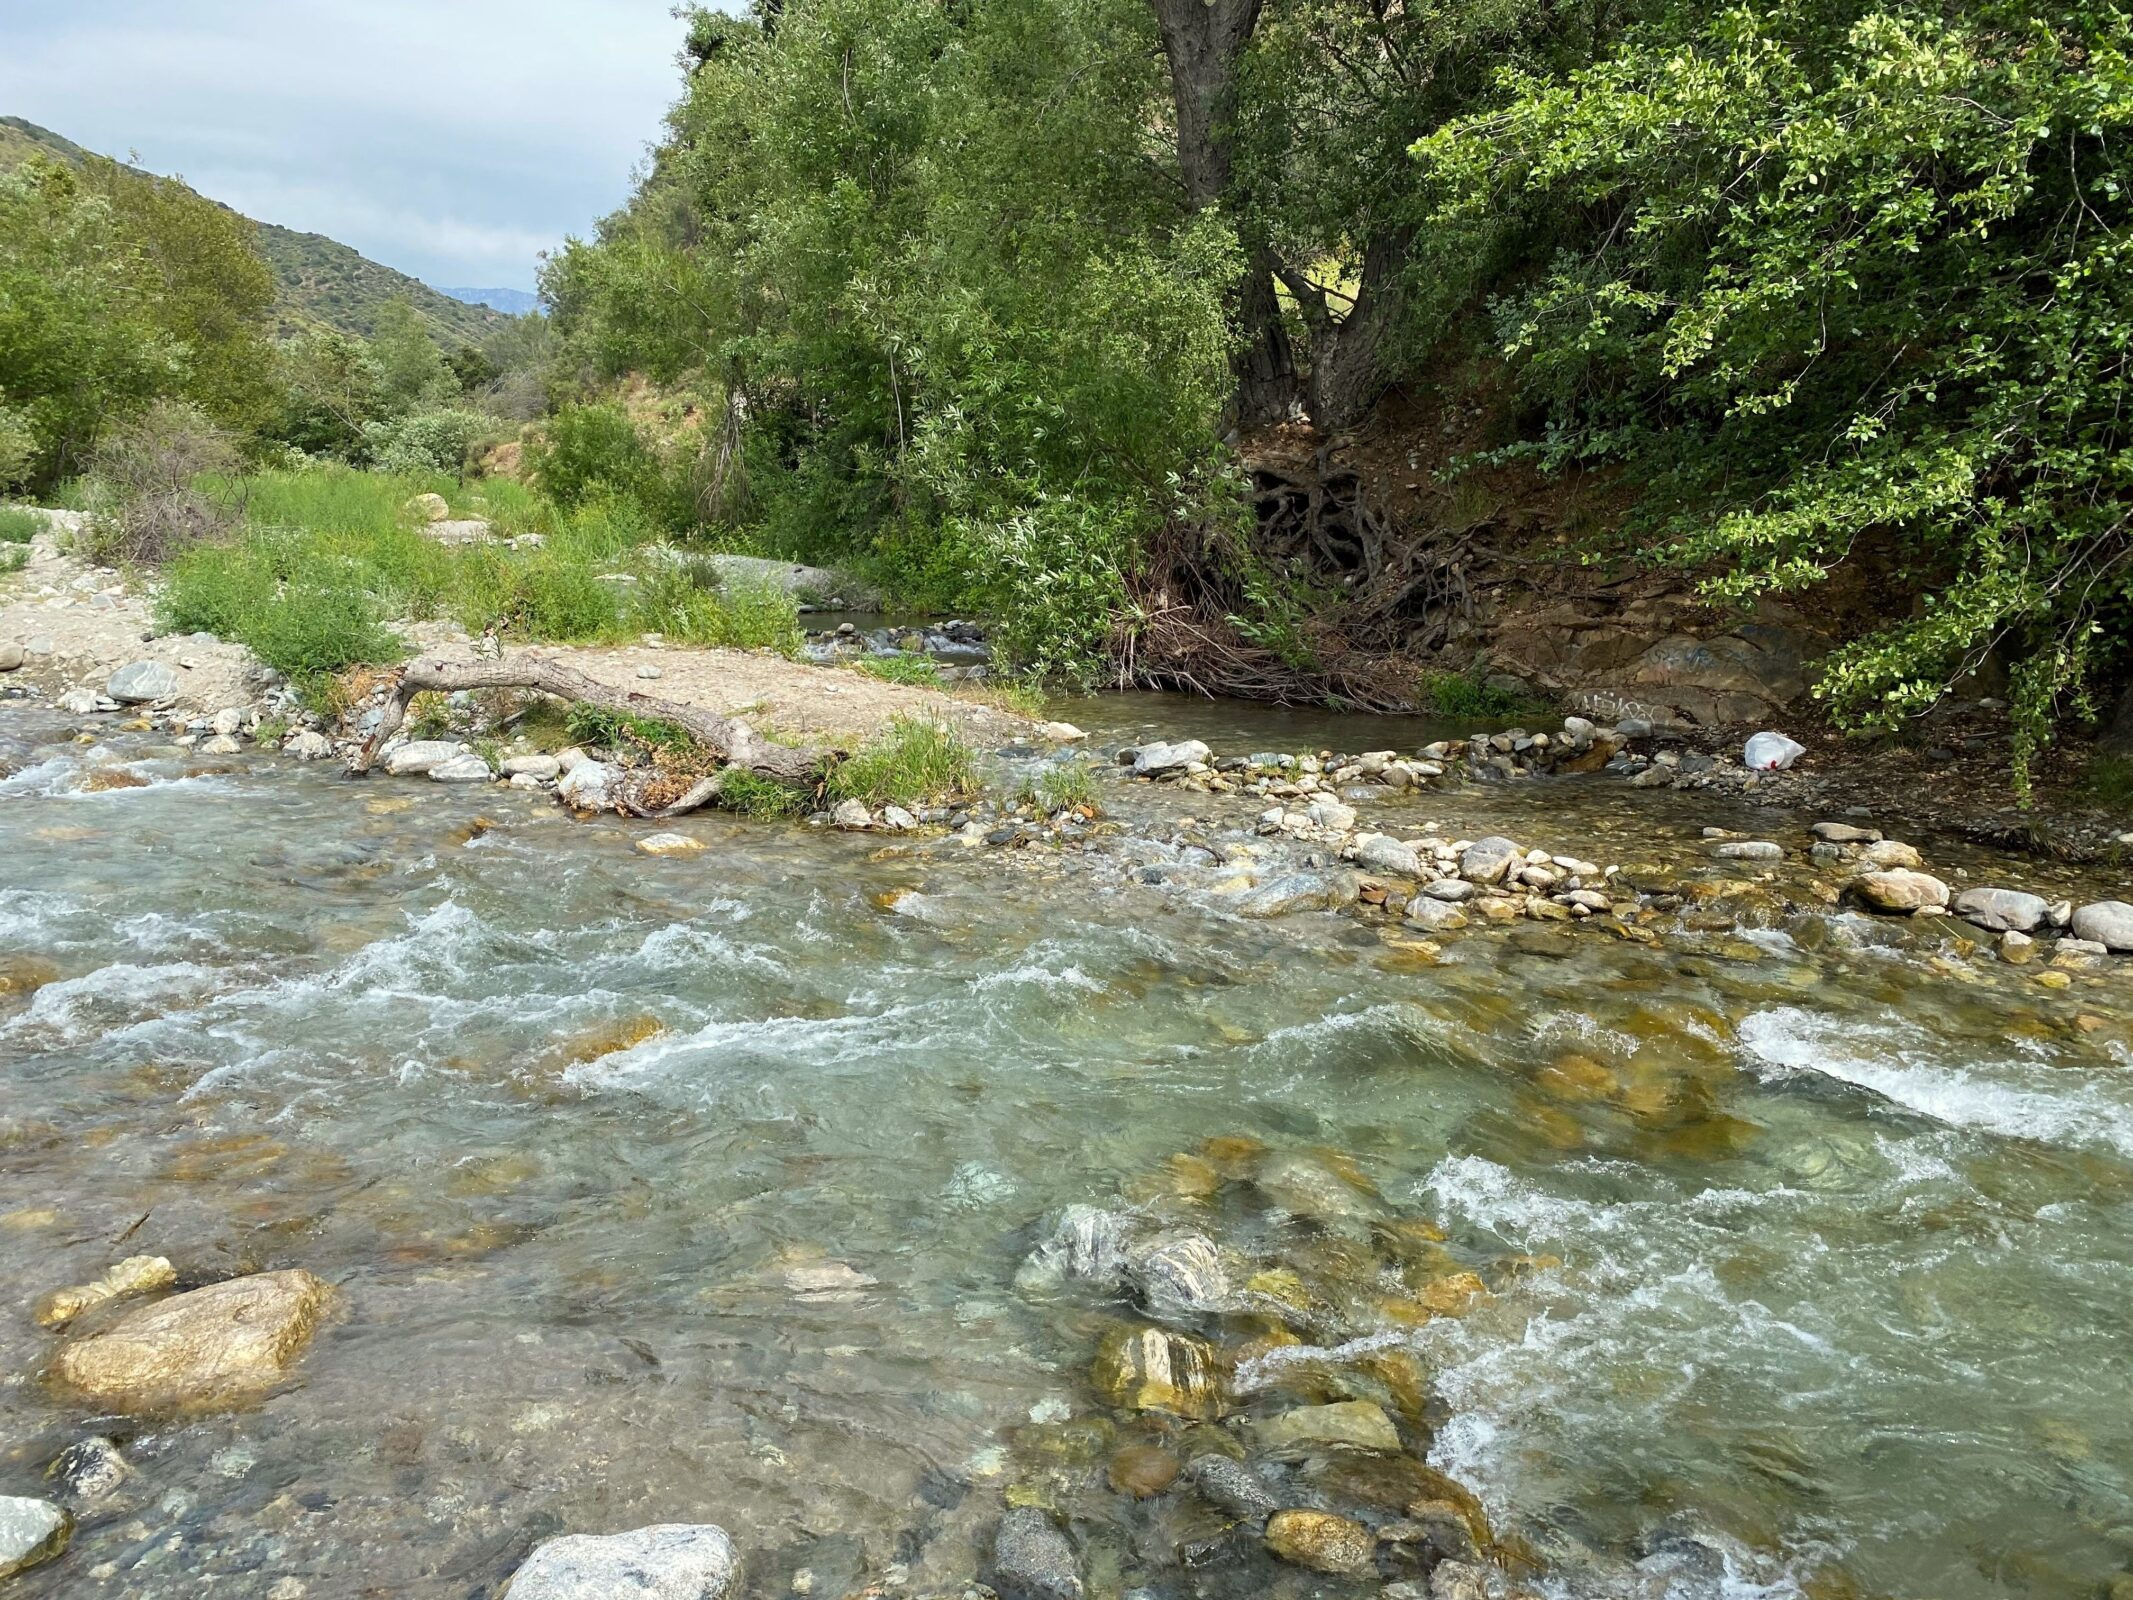 The North Fork of the San Gabriel River